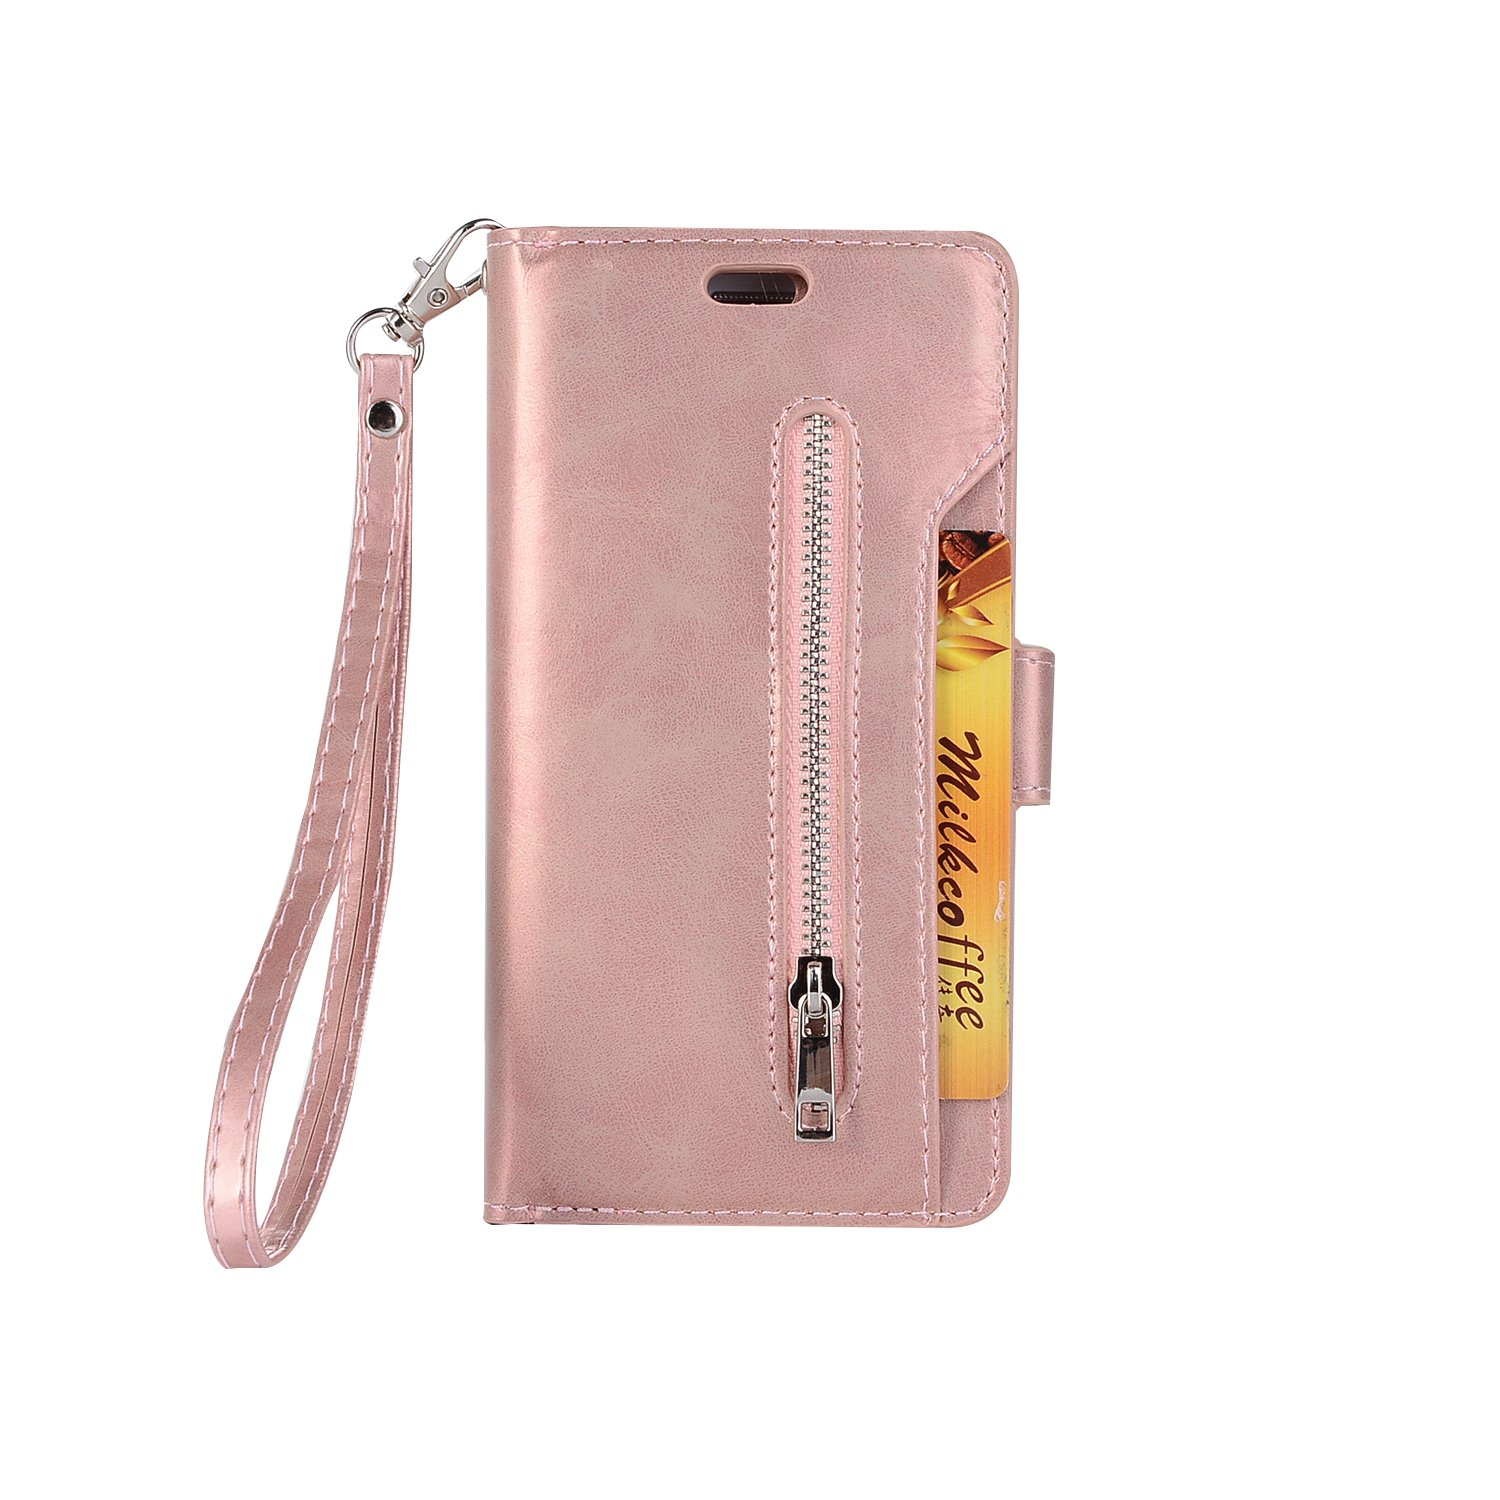 Sammid Galaxy S8 Wallet Case, Hand Strap PU Leather Protective Case Cover with Card Slots and Stand Function for Galaxy S8 - Rose Gold